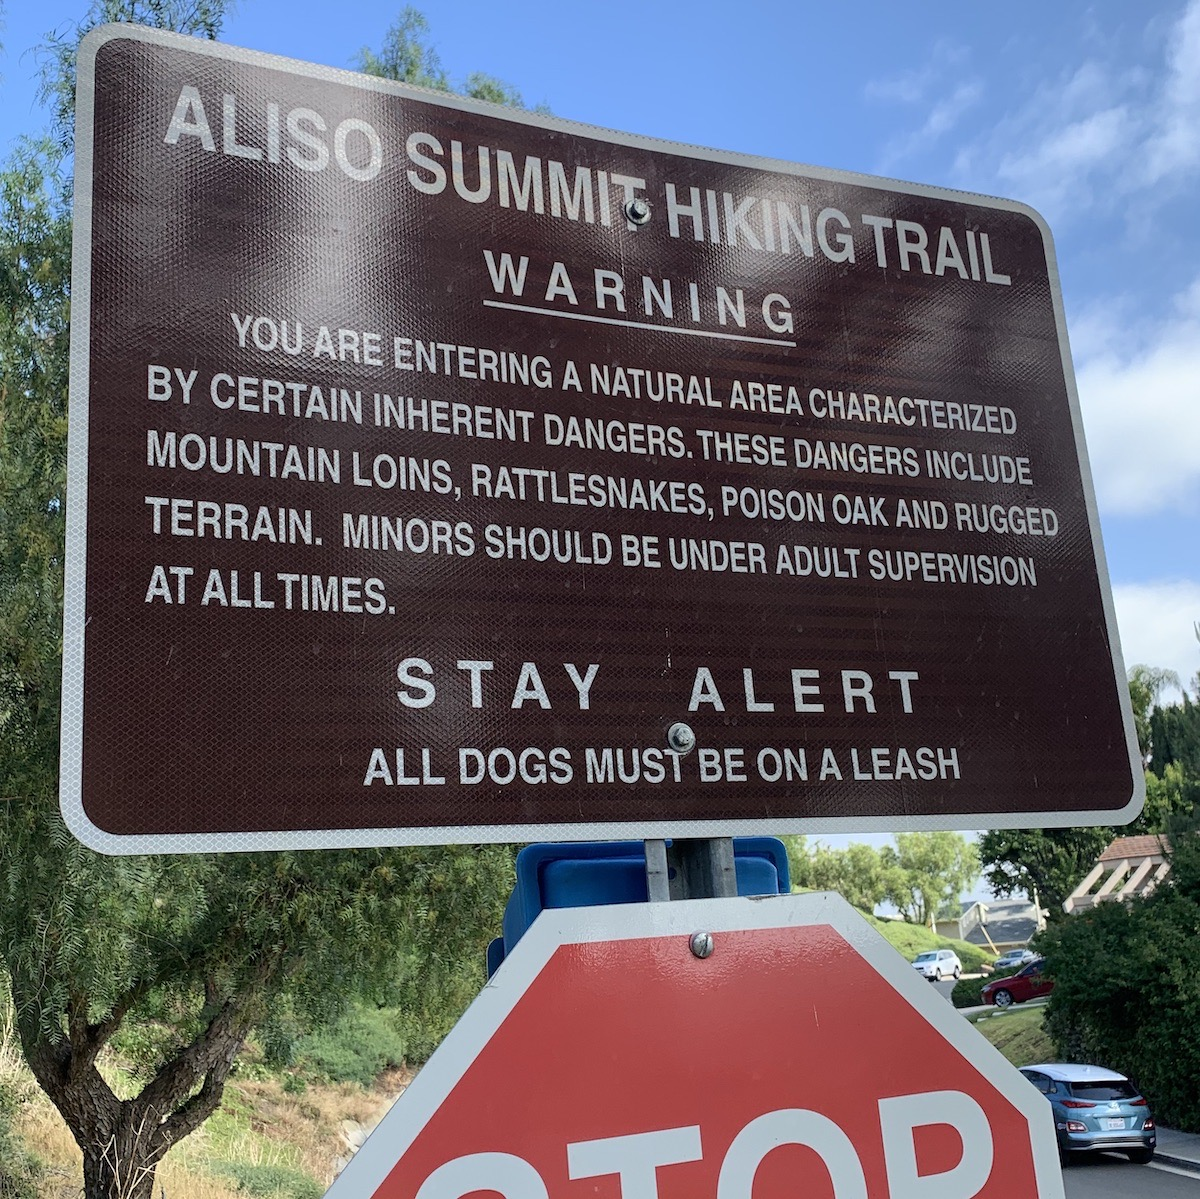 You are entering a natural area characterized by certain inherent dangers. These dangers include mountain loins, rattlesnakes, poison oak and rugged terrain.